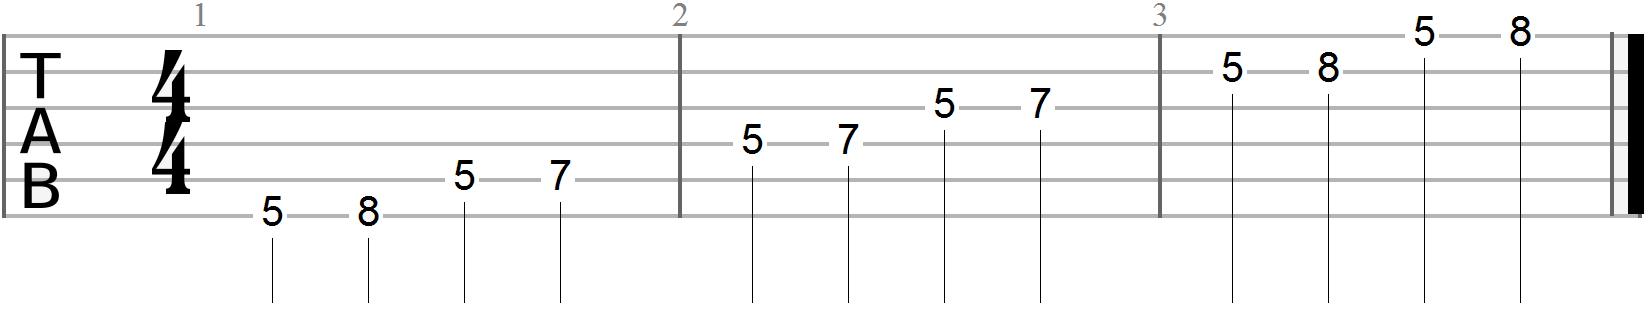 Eric Johnson Minor Pentatonic Scale Exercise